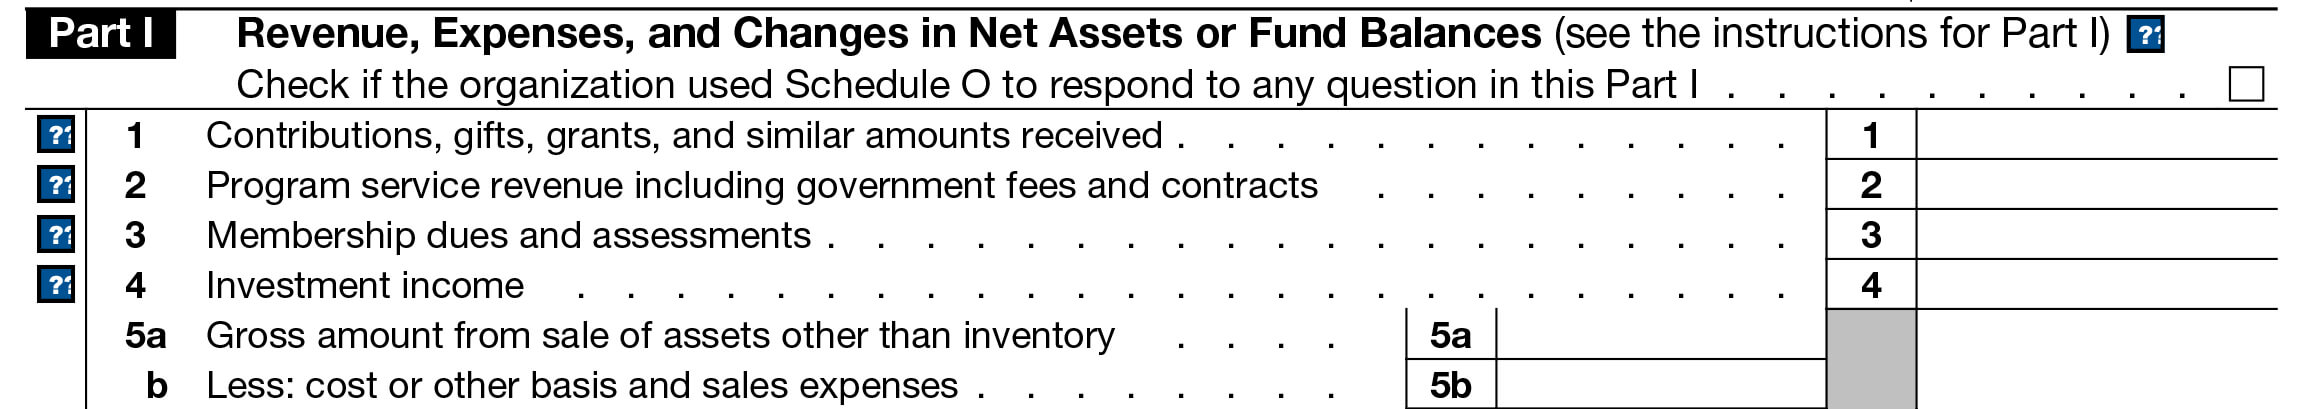 Part 1 - Revenue, Expenses, and Changes in Net Assets or Fund Balances